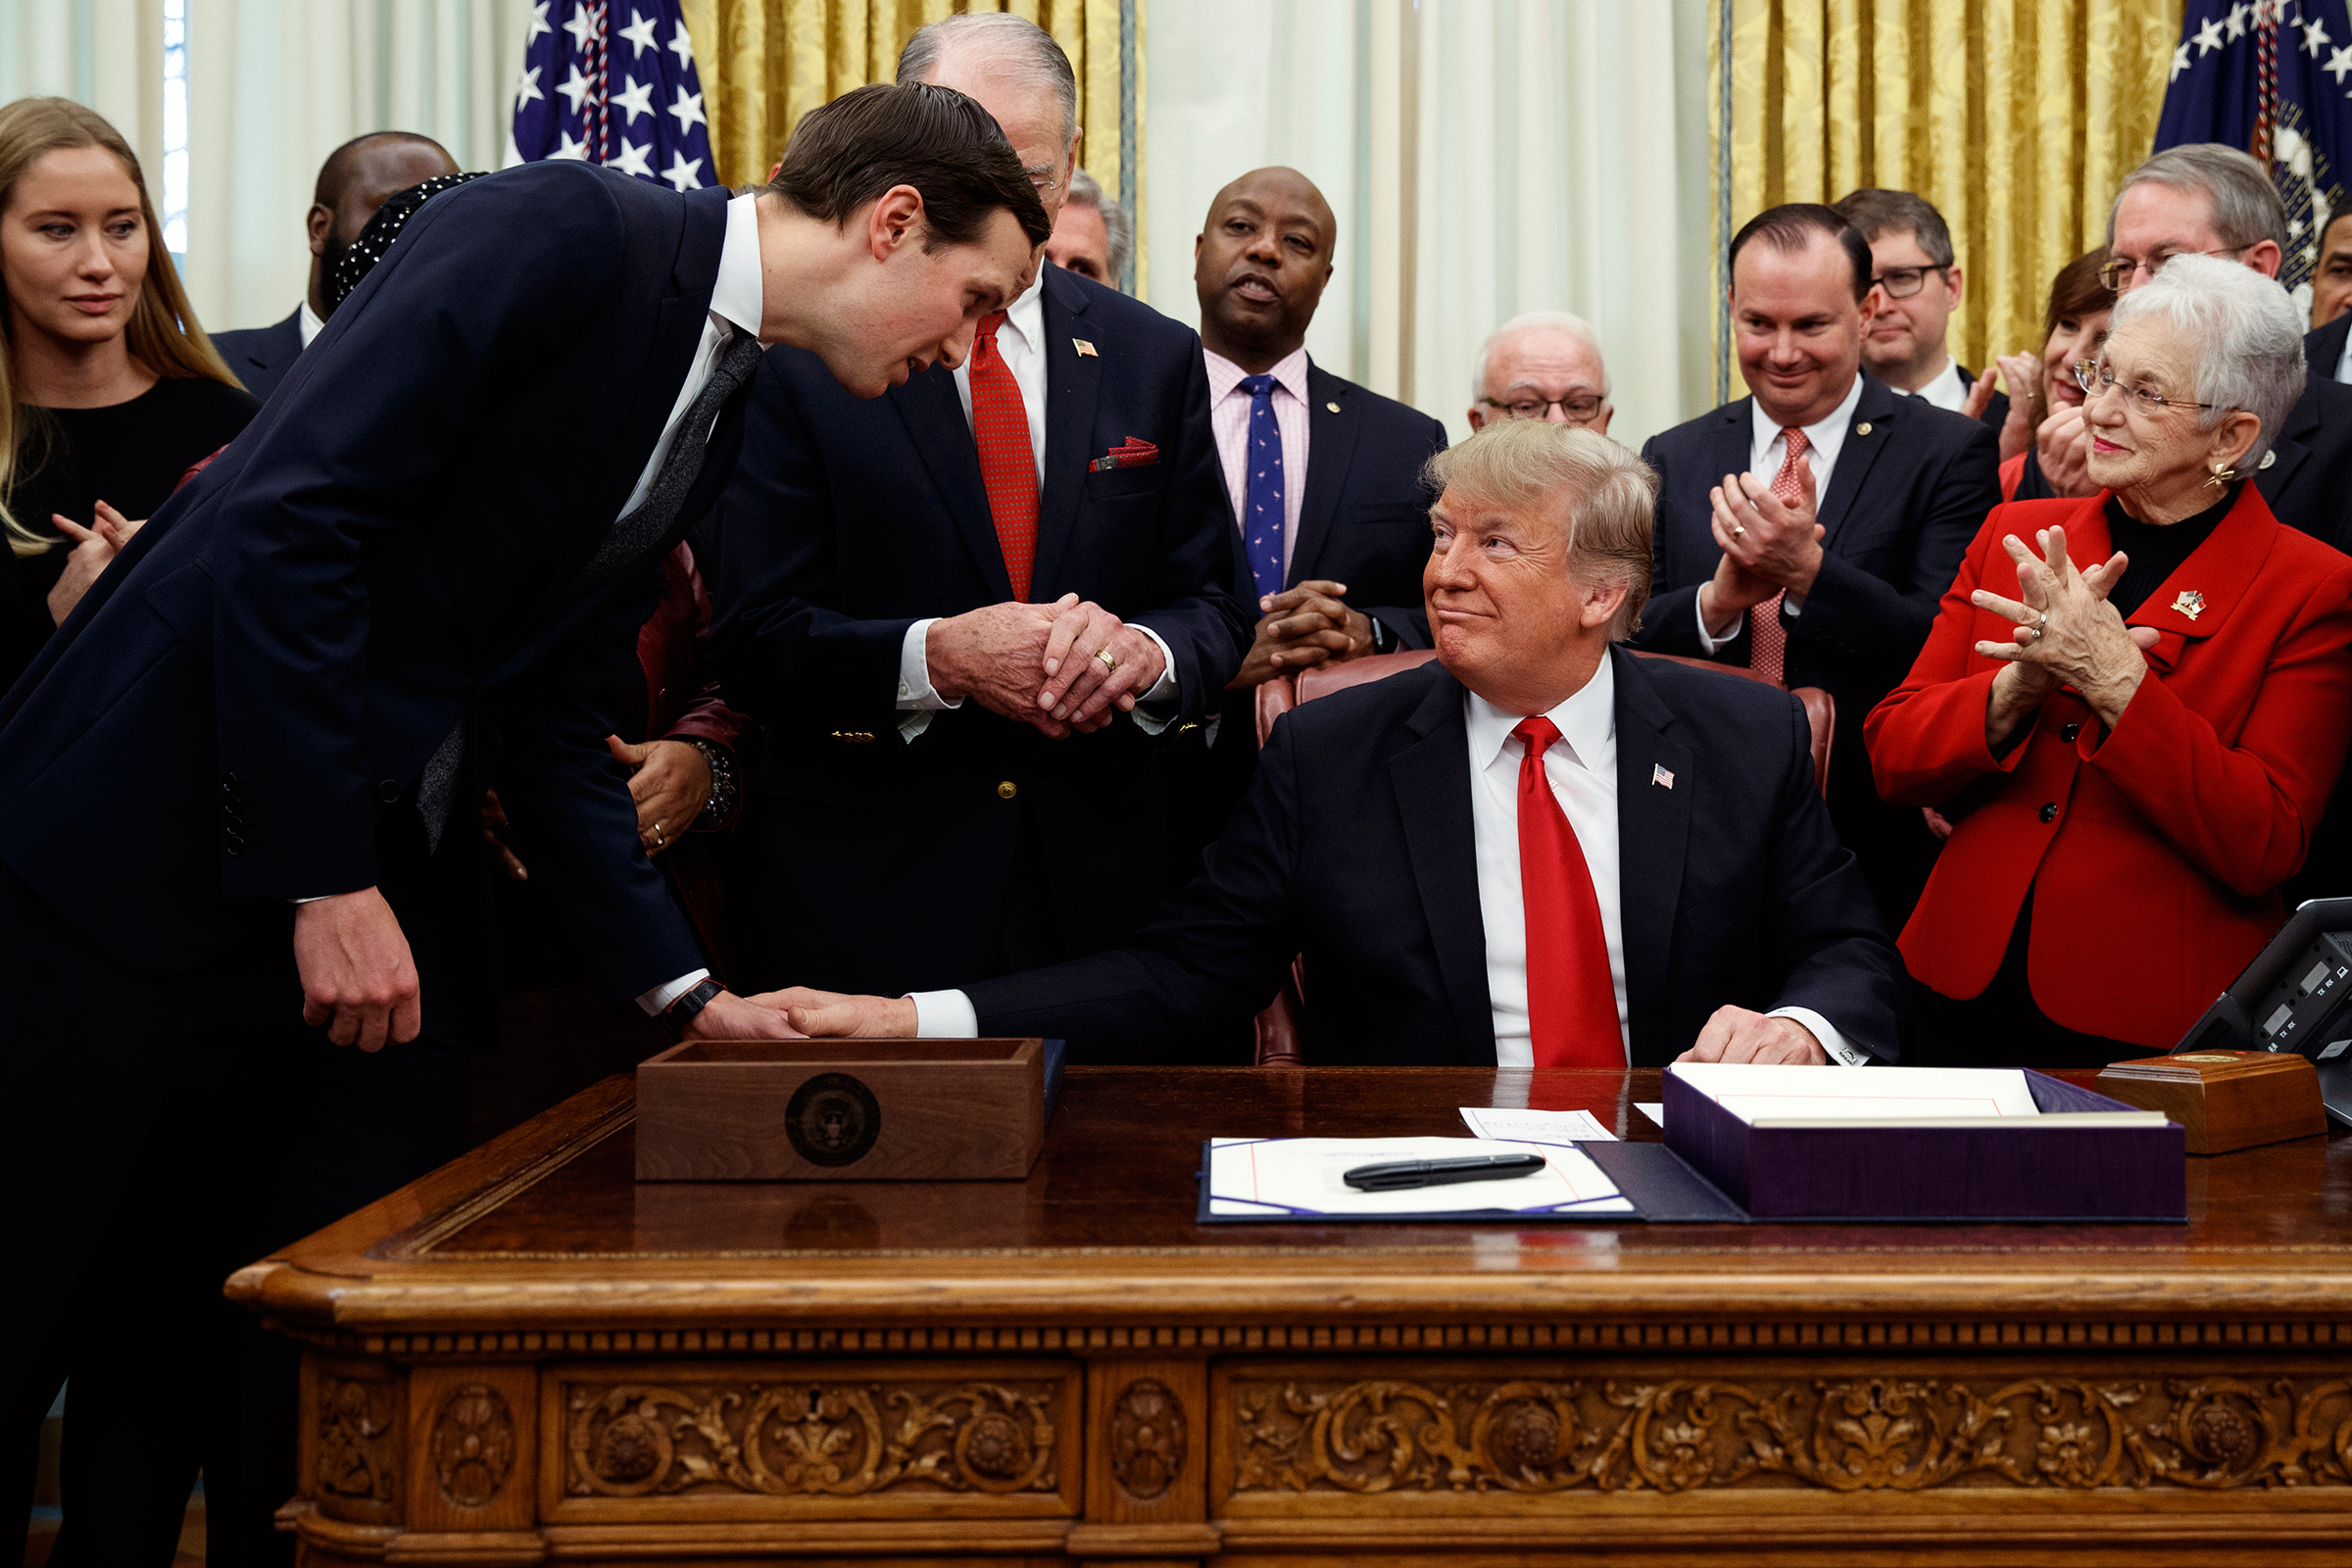 White House senior adviser Jared Kushner talks with President Donald Trump during a signing ceremony for criminal justice reform legislation in the Oval Office of the White House, Dec. 21, 2018.